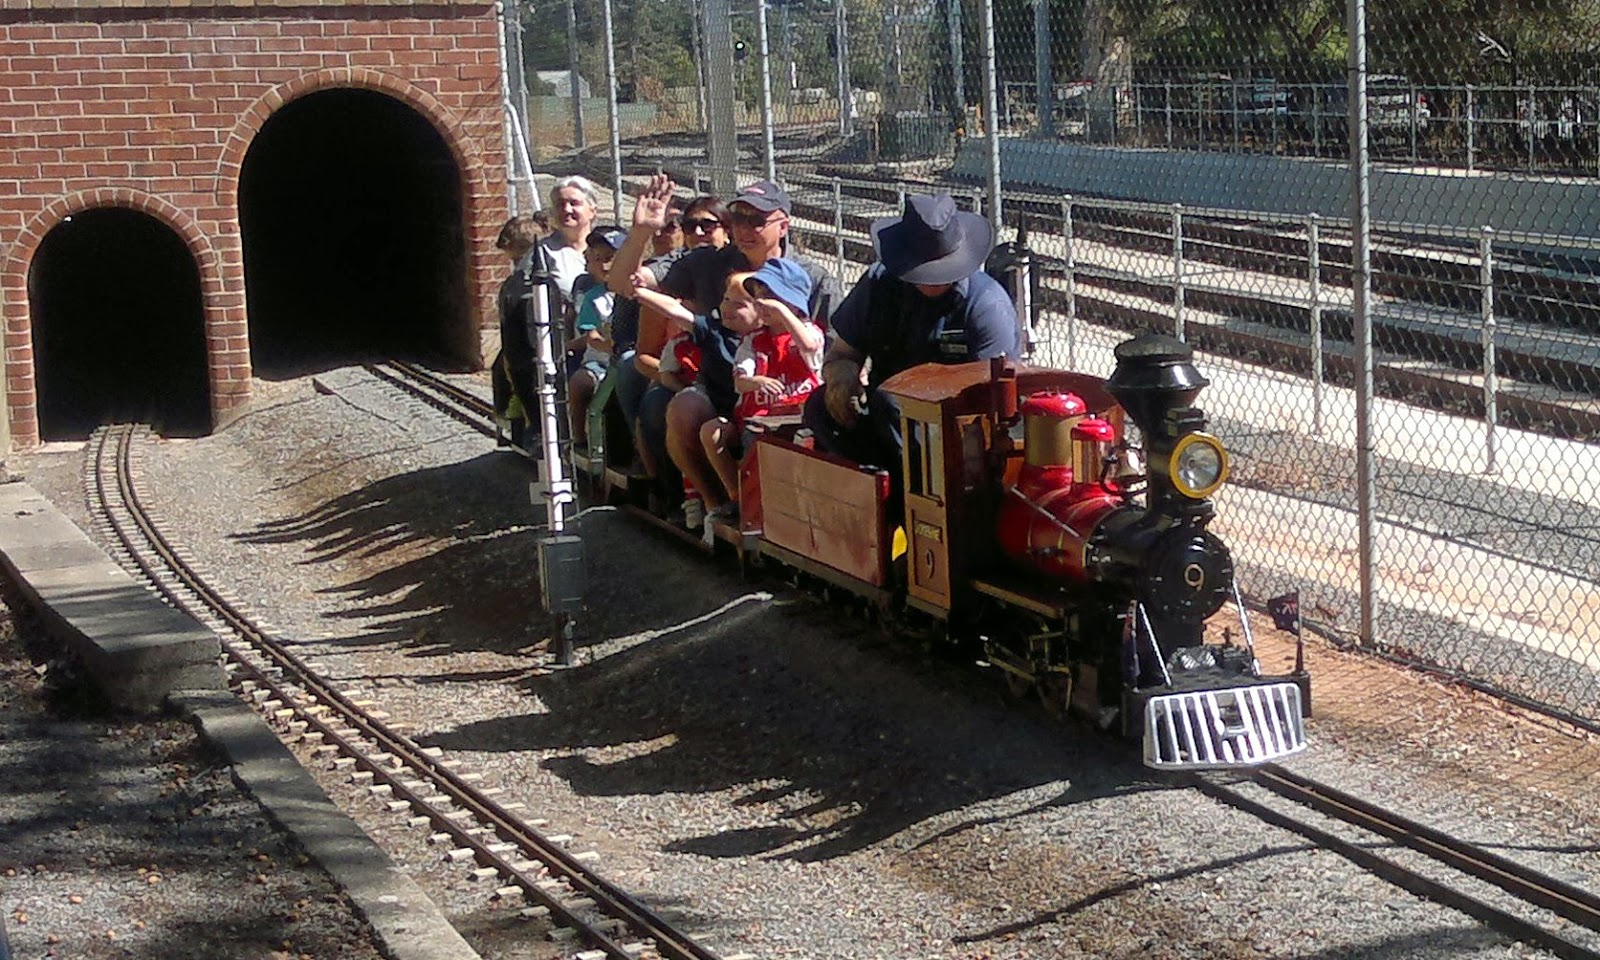 "Model American style steam locomotive coming out of a tunnel. The loco is named ""Yosemite Valley Railroad Jofesine No. 9""  travelling with two carriages loaded with passengers.  The full-scale 'real-life' suburban railway lines can be seen beyond the fence."